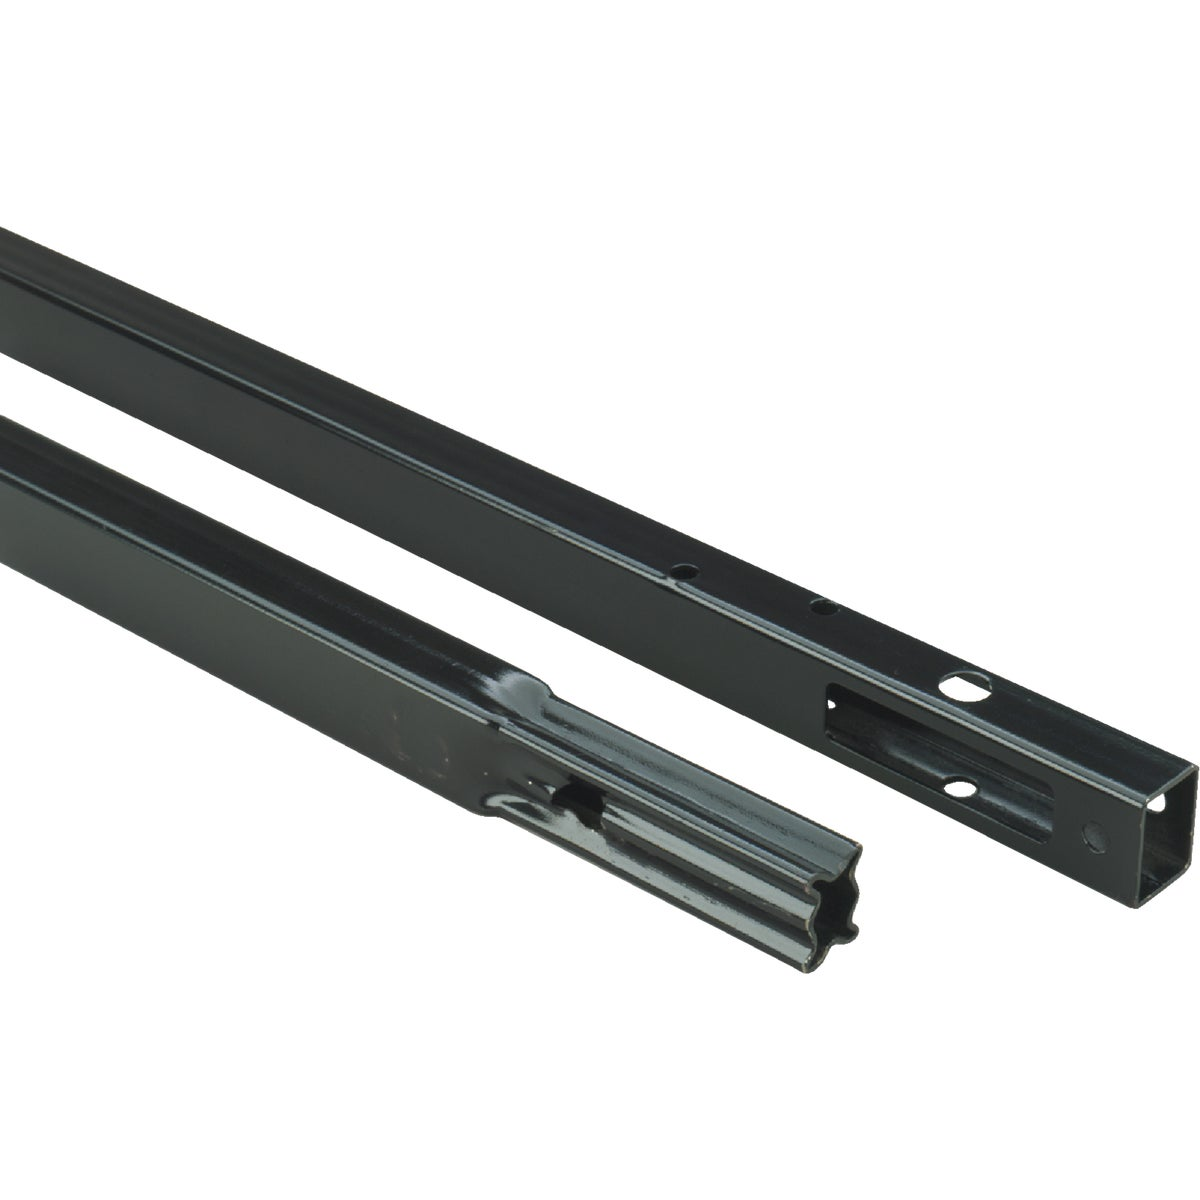 10' RAIL EXTENSION KIT - 8810CB by Chamberlain